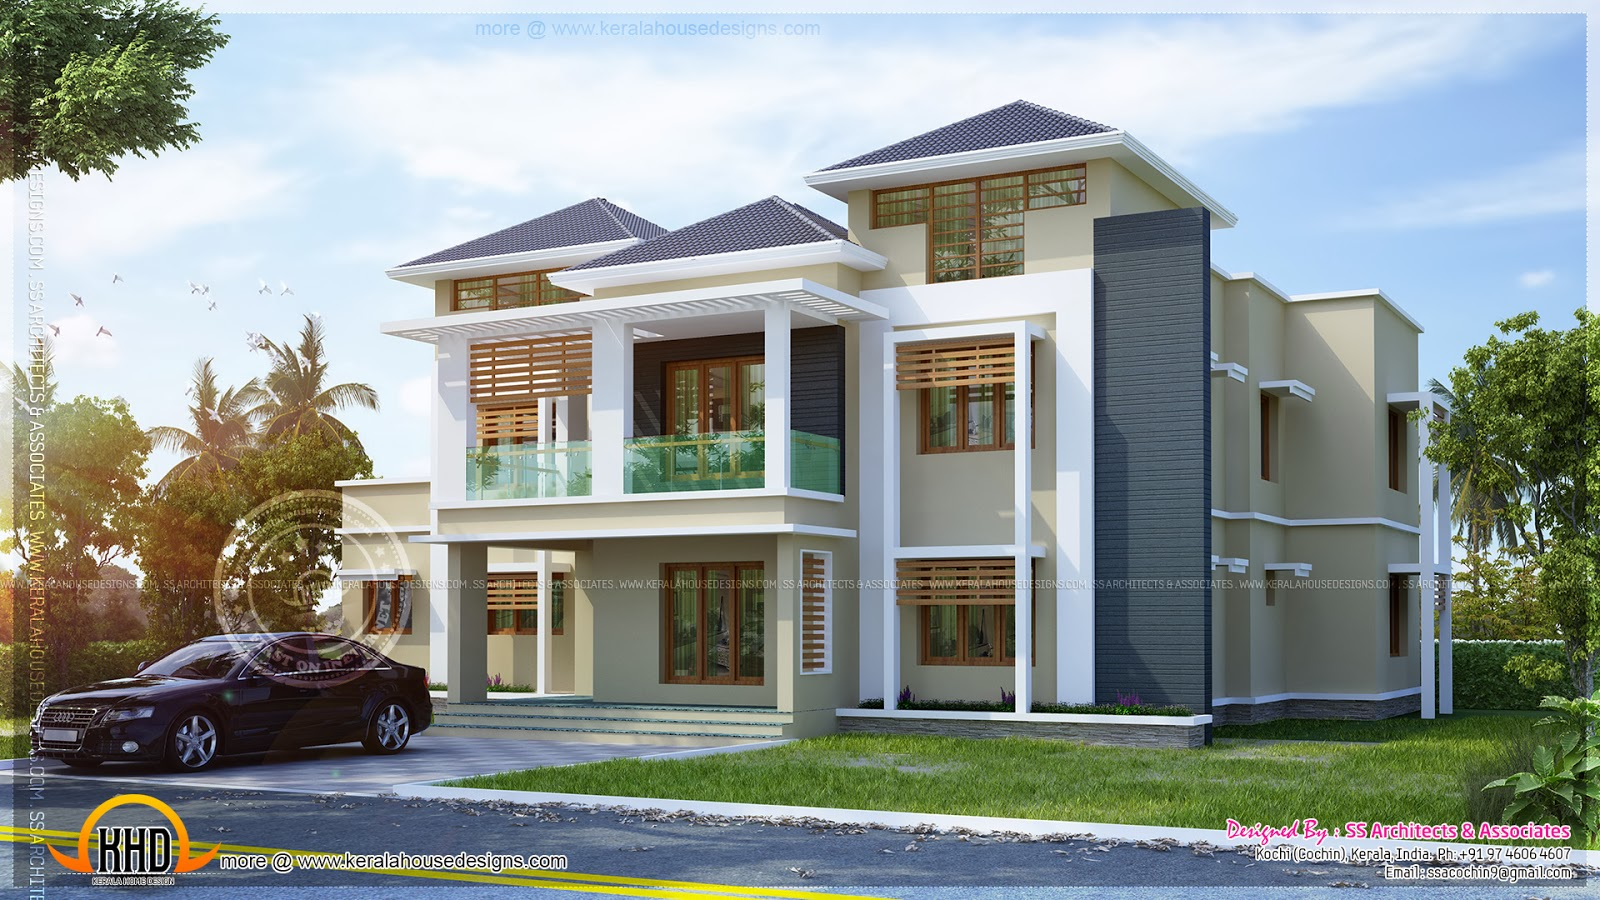 Awesome house plan kerala home design and floor plans for Awesome home plans